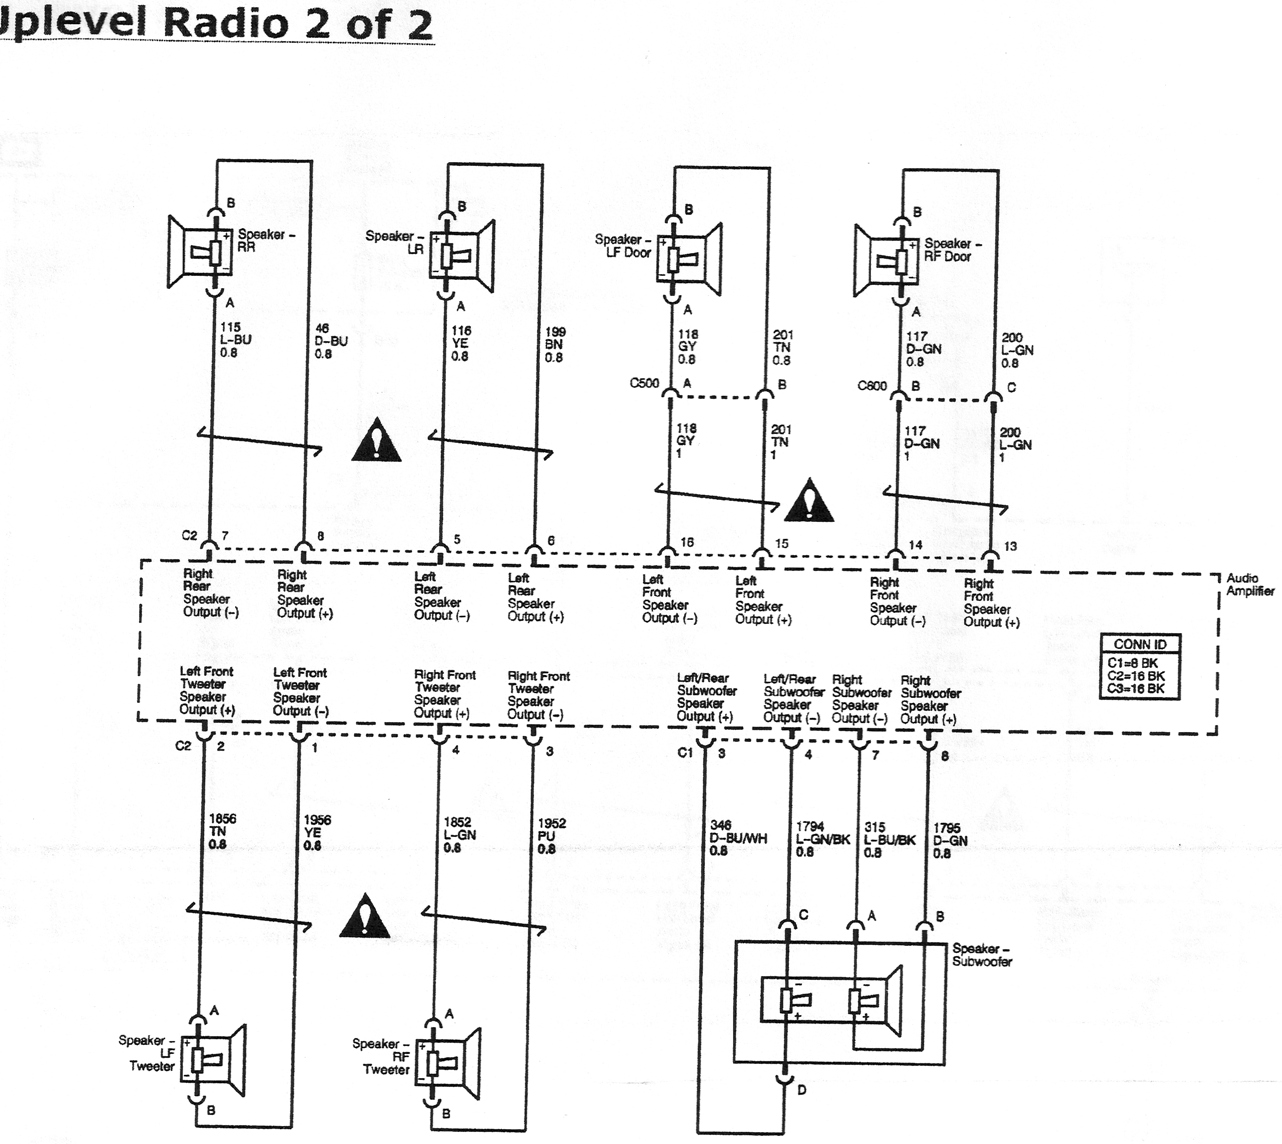 13046d1208896992 amp hook up existing monsoon system monsoon_wiring_diagram_page_2 wiring diagram pontiac the wiring diagram readingrat net wiring diagram 2006 pontiac g6 with monsoon at bakdesigns.co